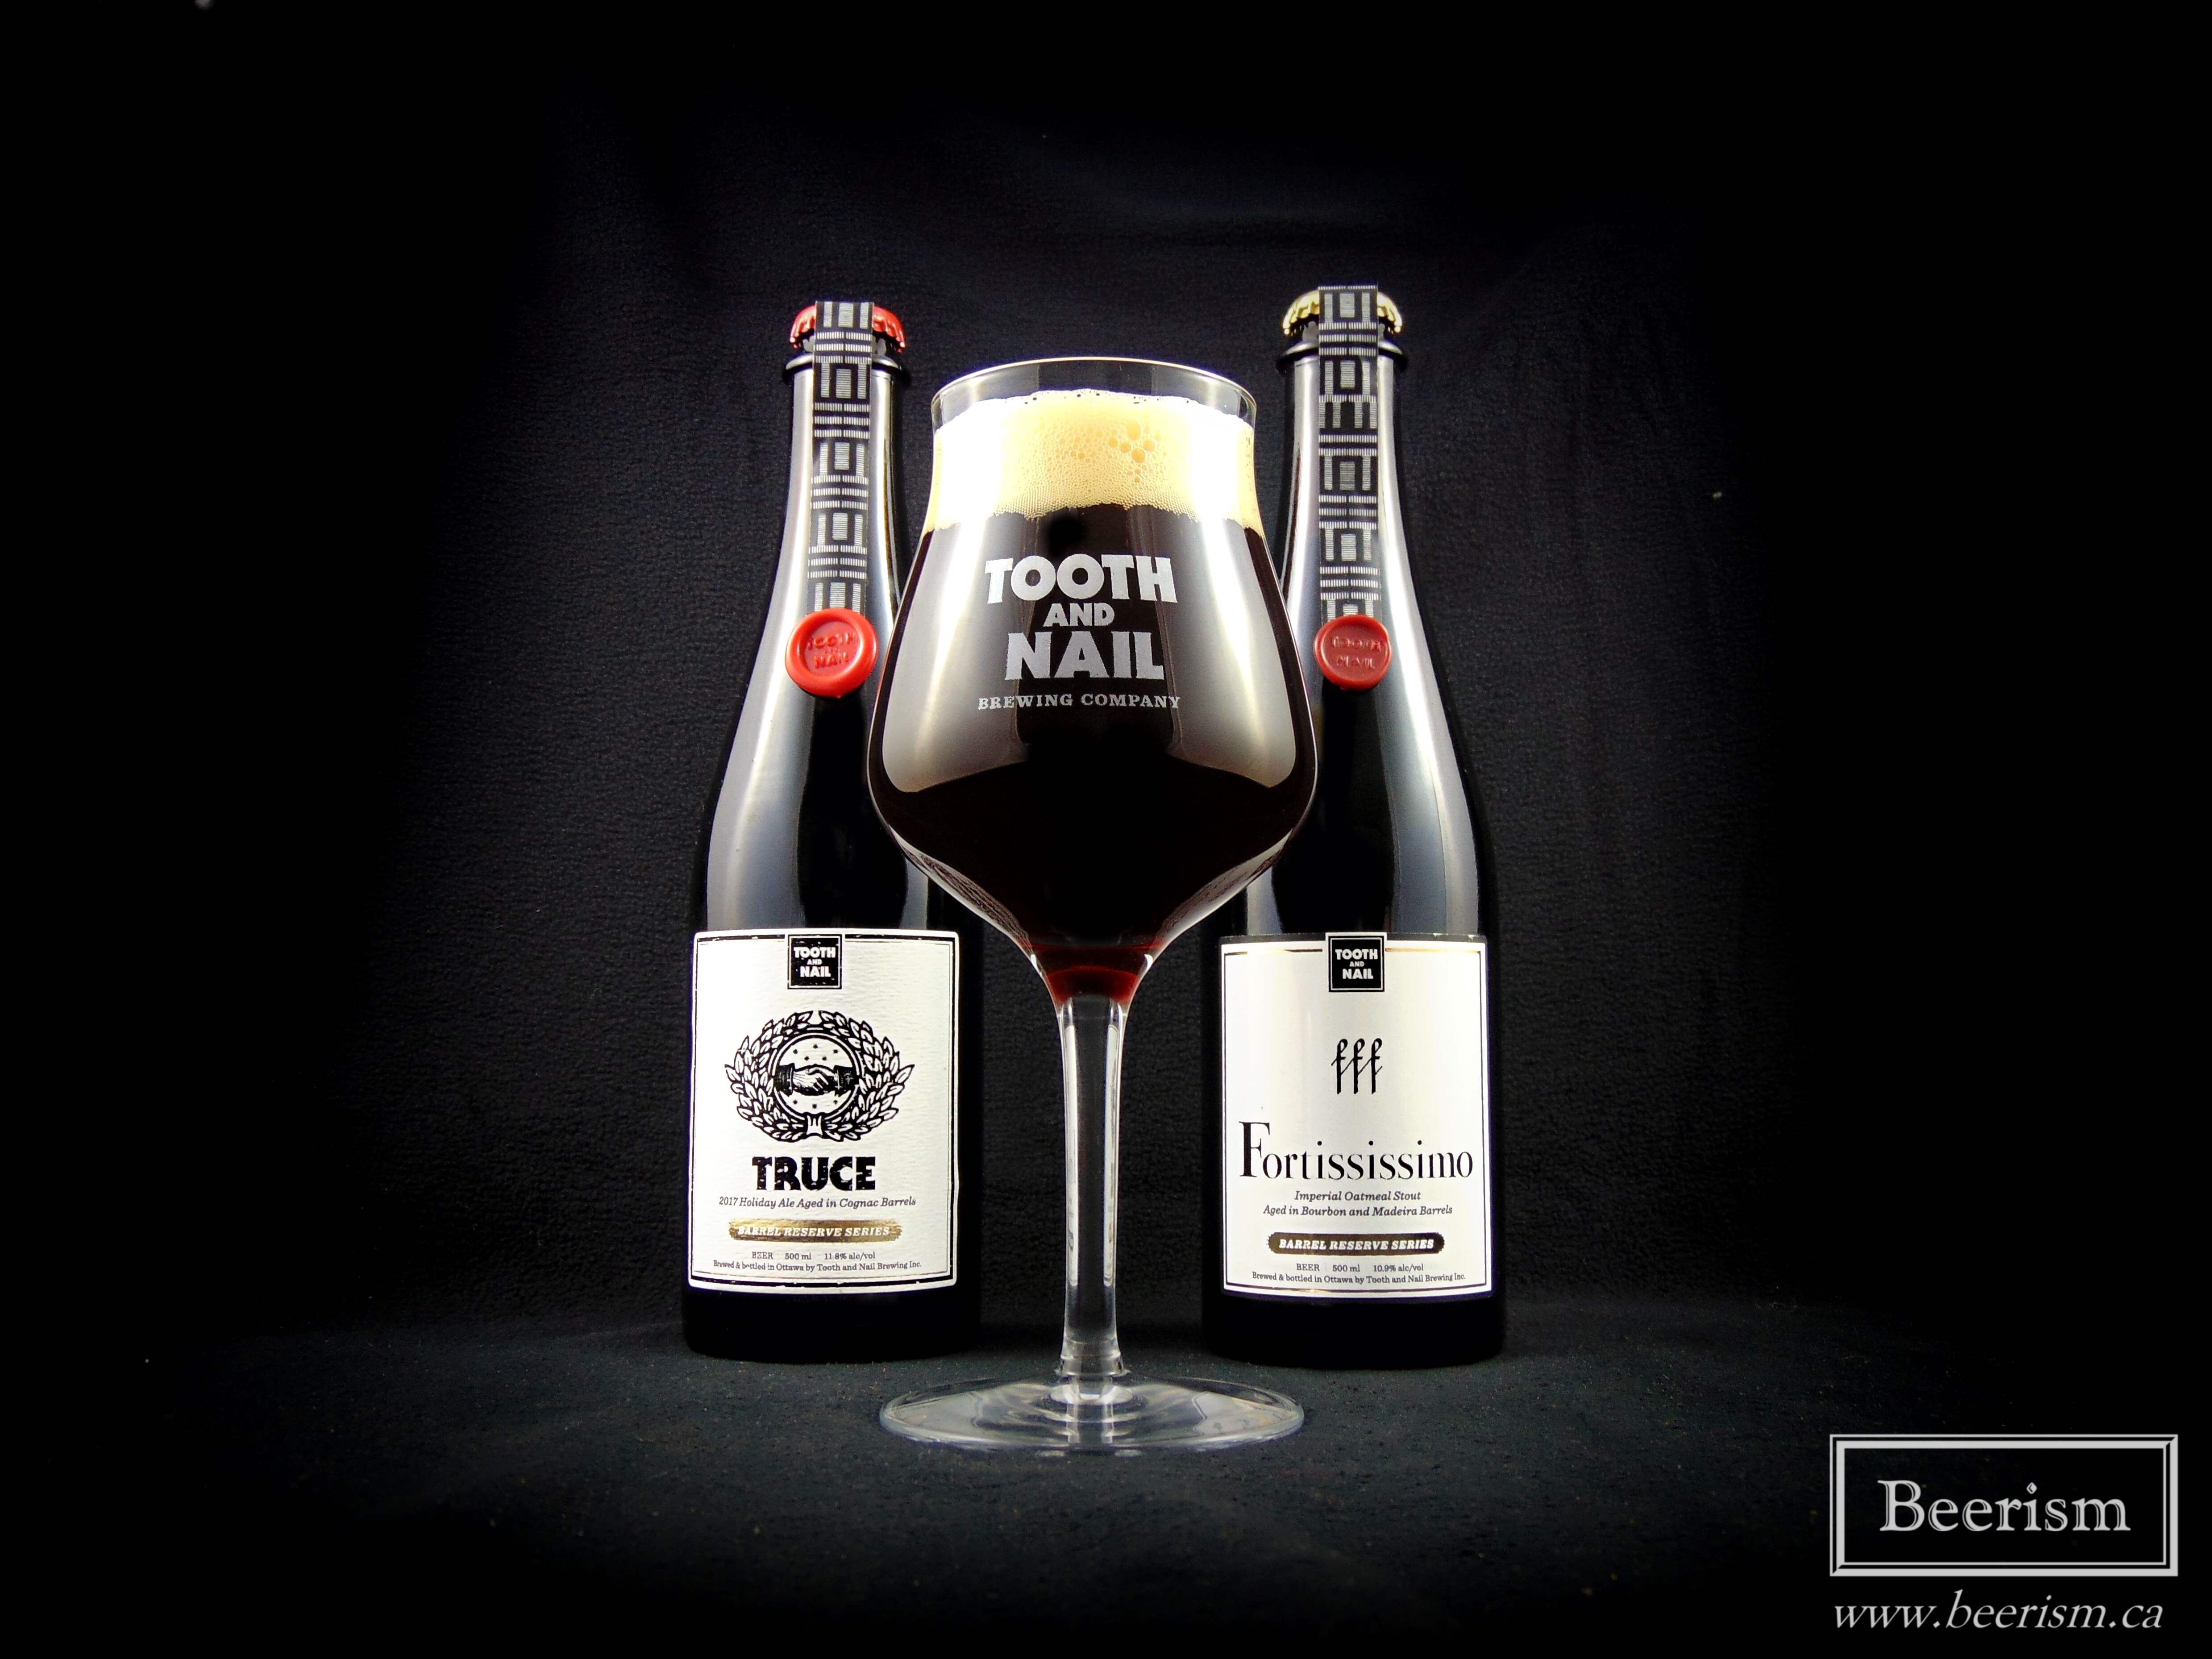 Ottawa's Tooth and Nail Brewing Company Releases Barrel